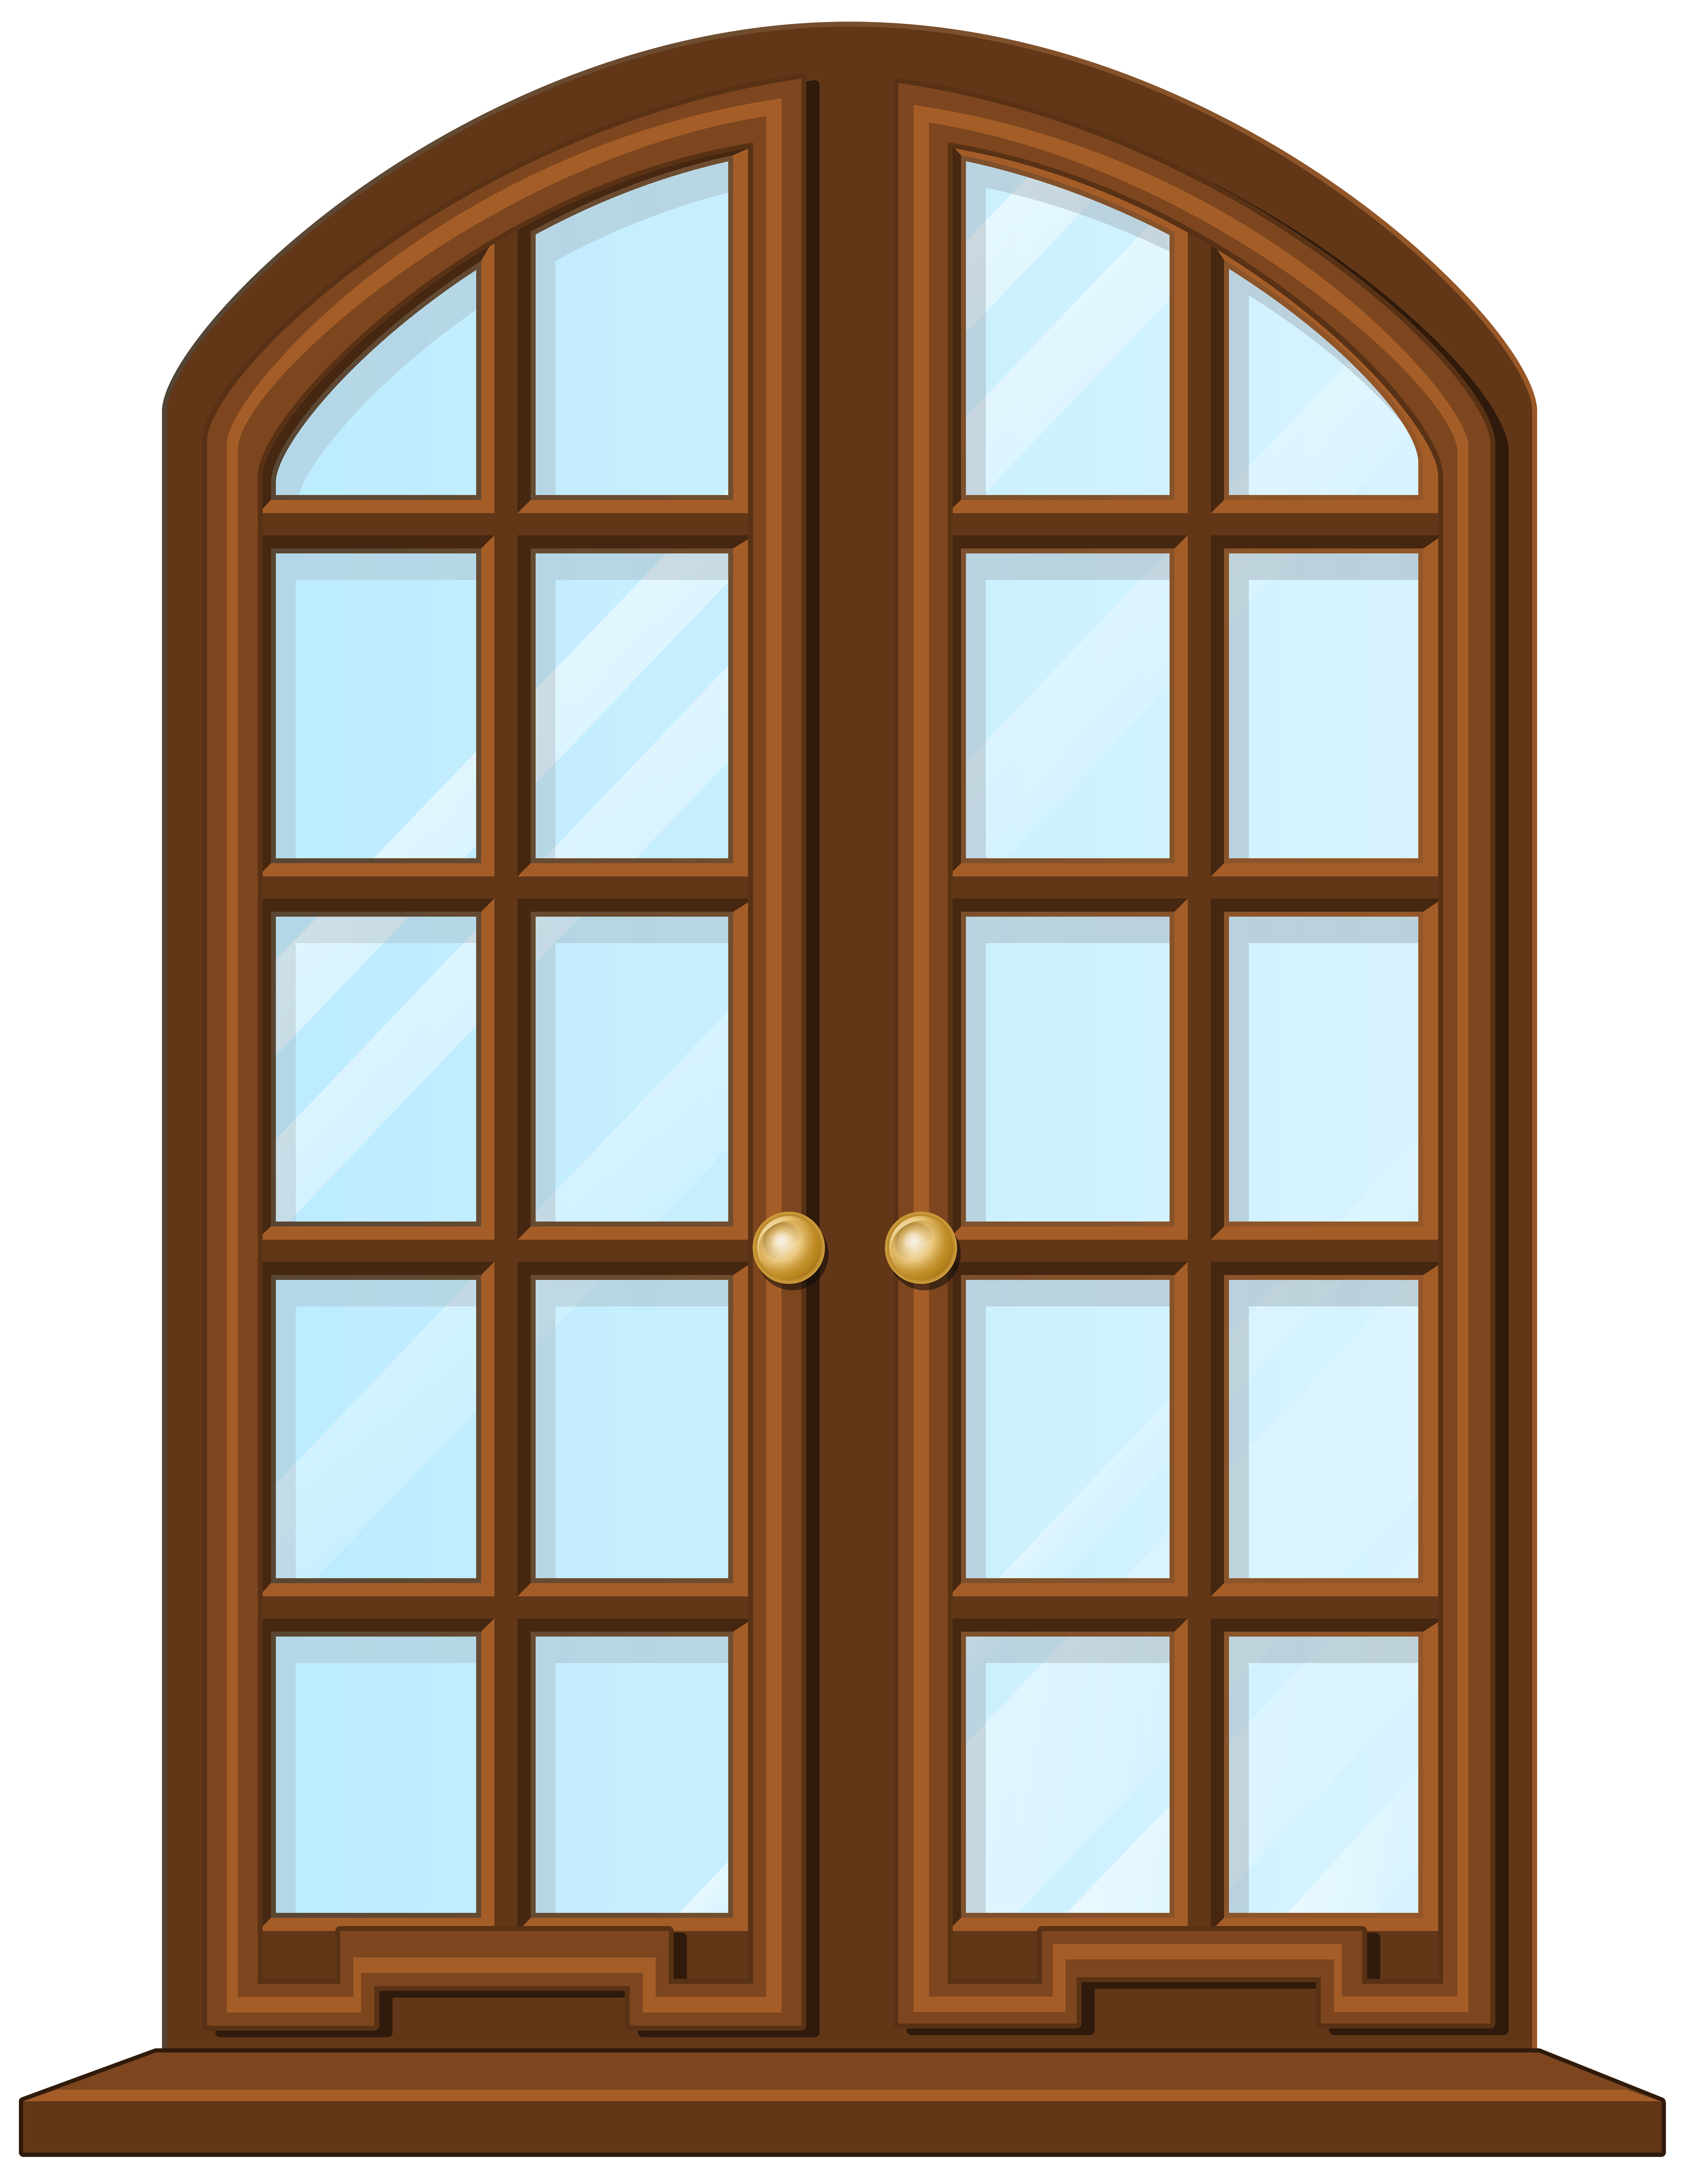 Clipart gucciguanfangwang me clip. House window png